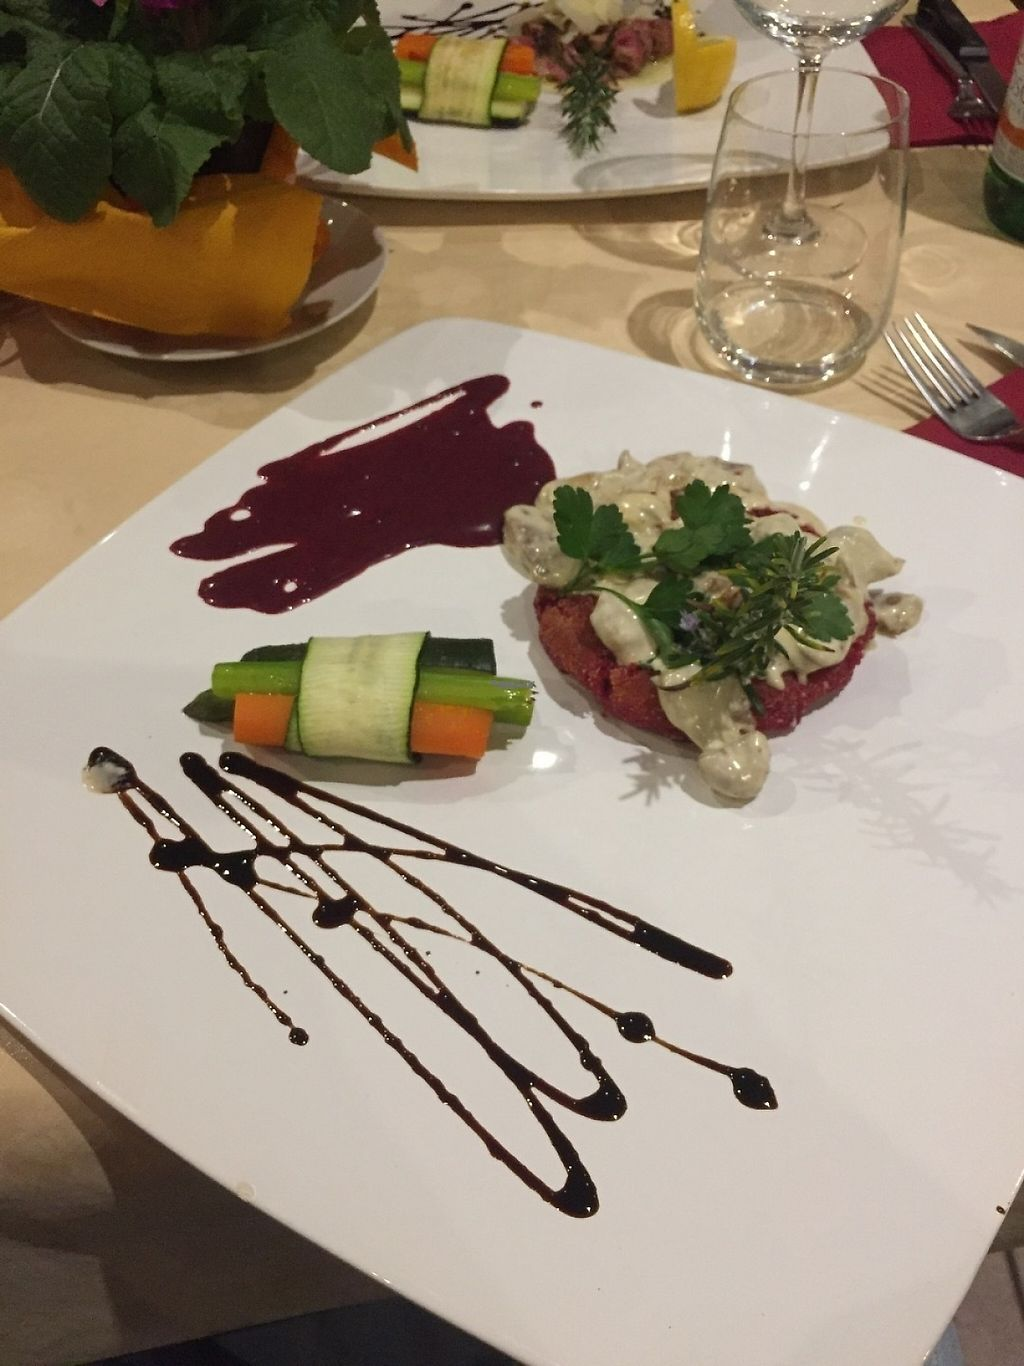 """Photo of Hotel Rovere  by <a href=""""/members/profile/ssarad"""">ssarad</a> <br/>vegan burger with mushroom sauce <br/> March 9, 2017  - <a href='/contact/abuse/image/88052/234627'>Report</a>"""